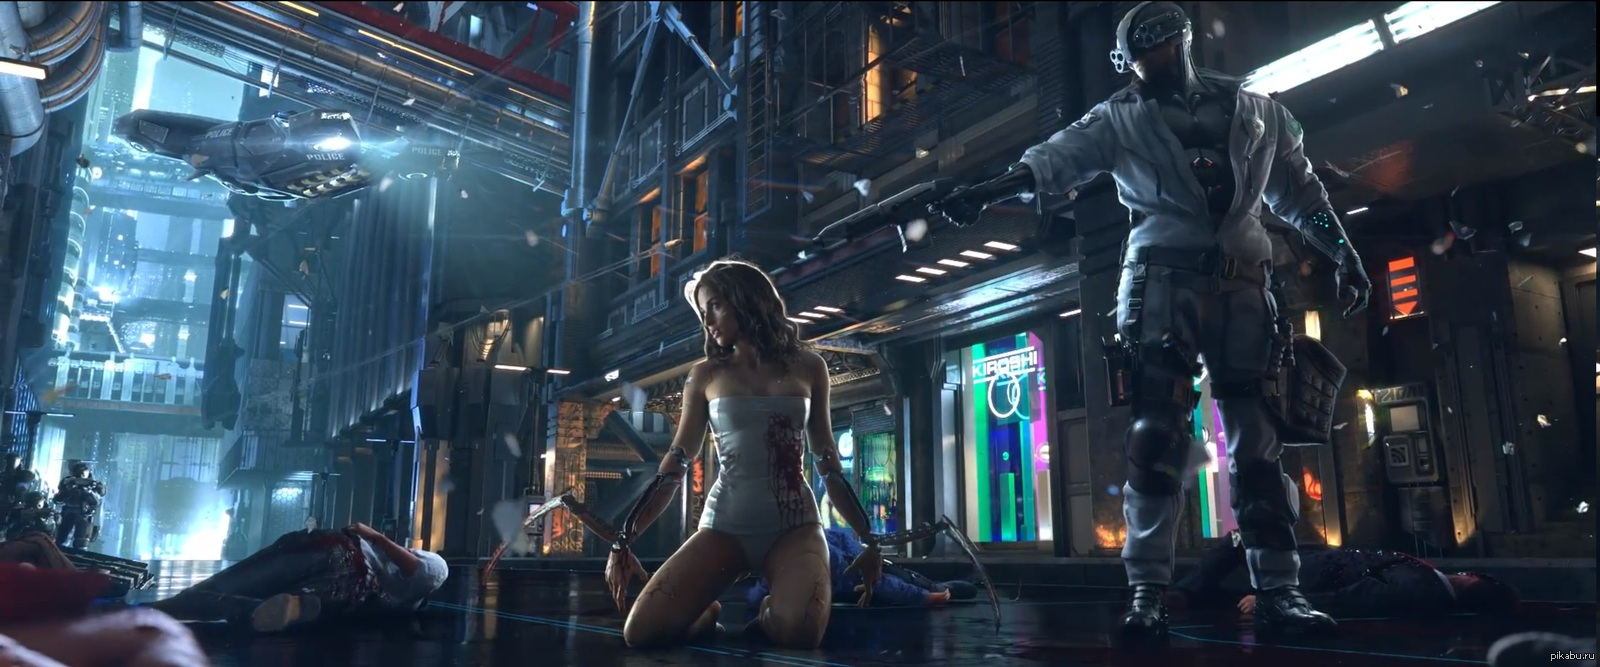 Cyberpunk 2077 is the next massive game expected to be released by CD Projekt RED the studio behind The Witcher series Heres all we know about it so far